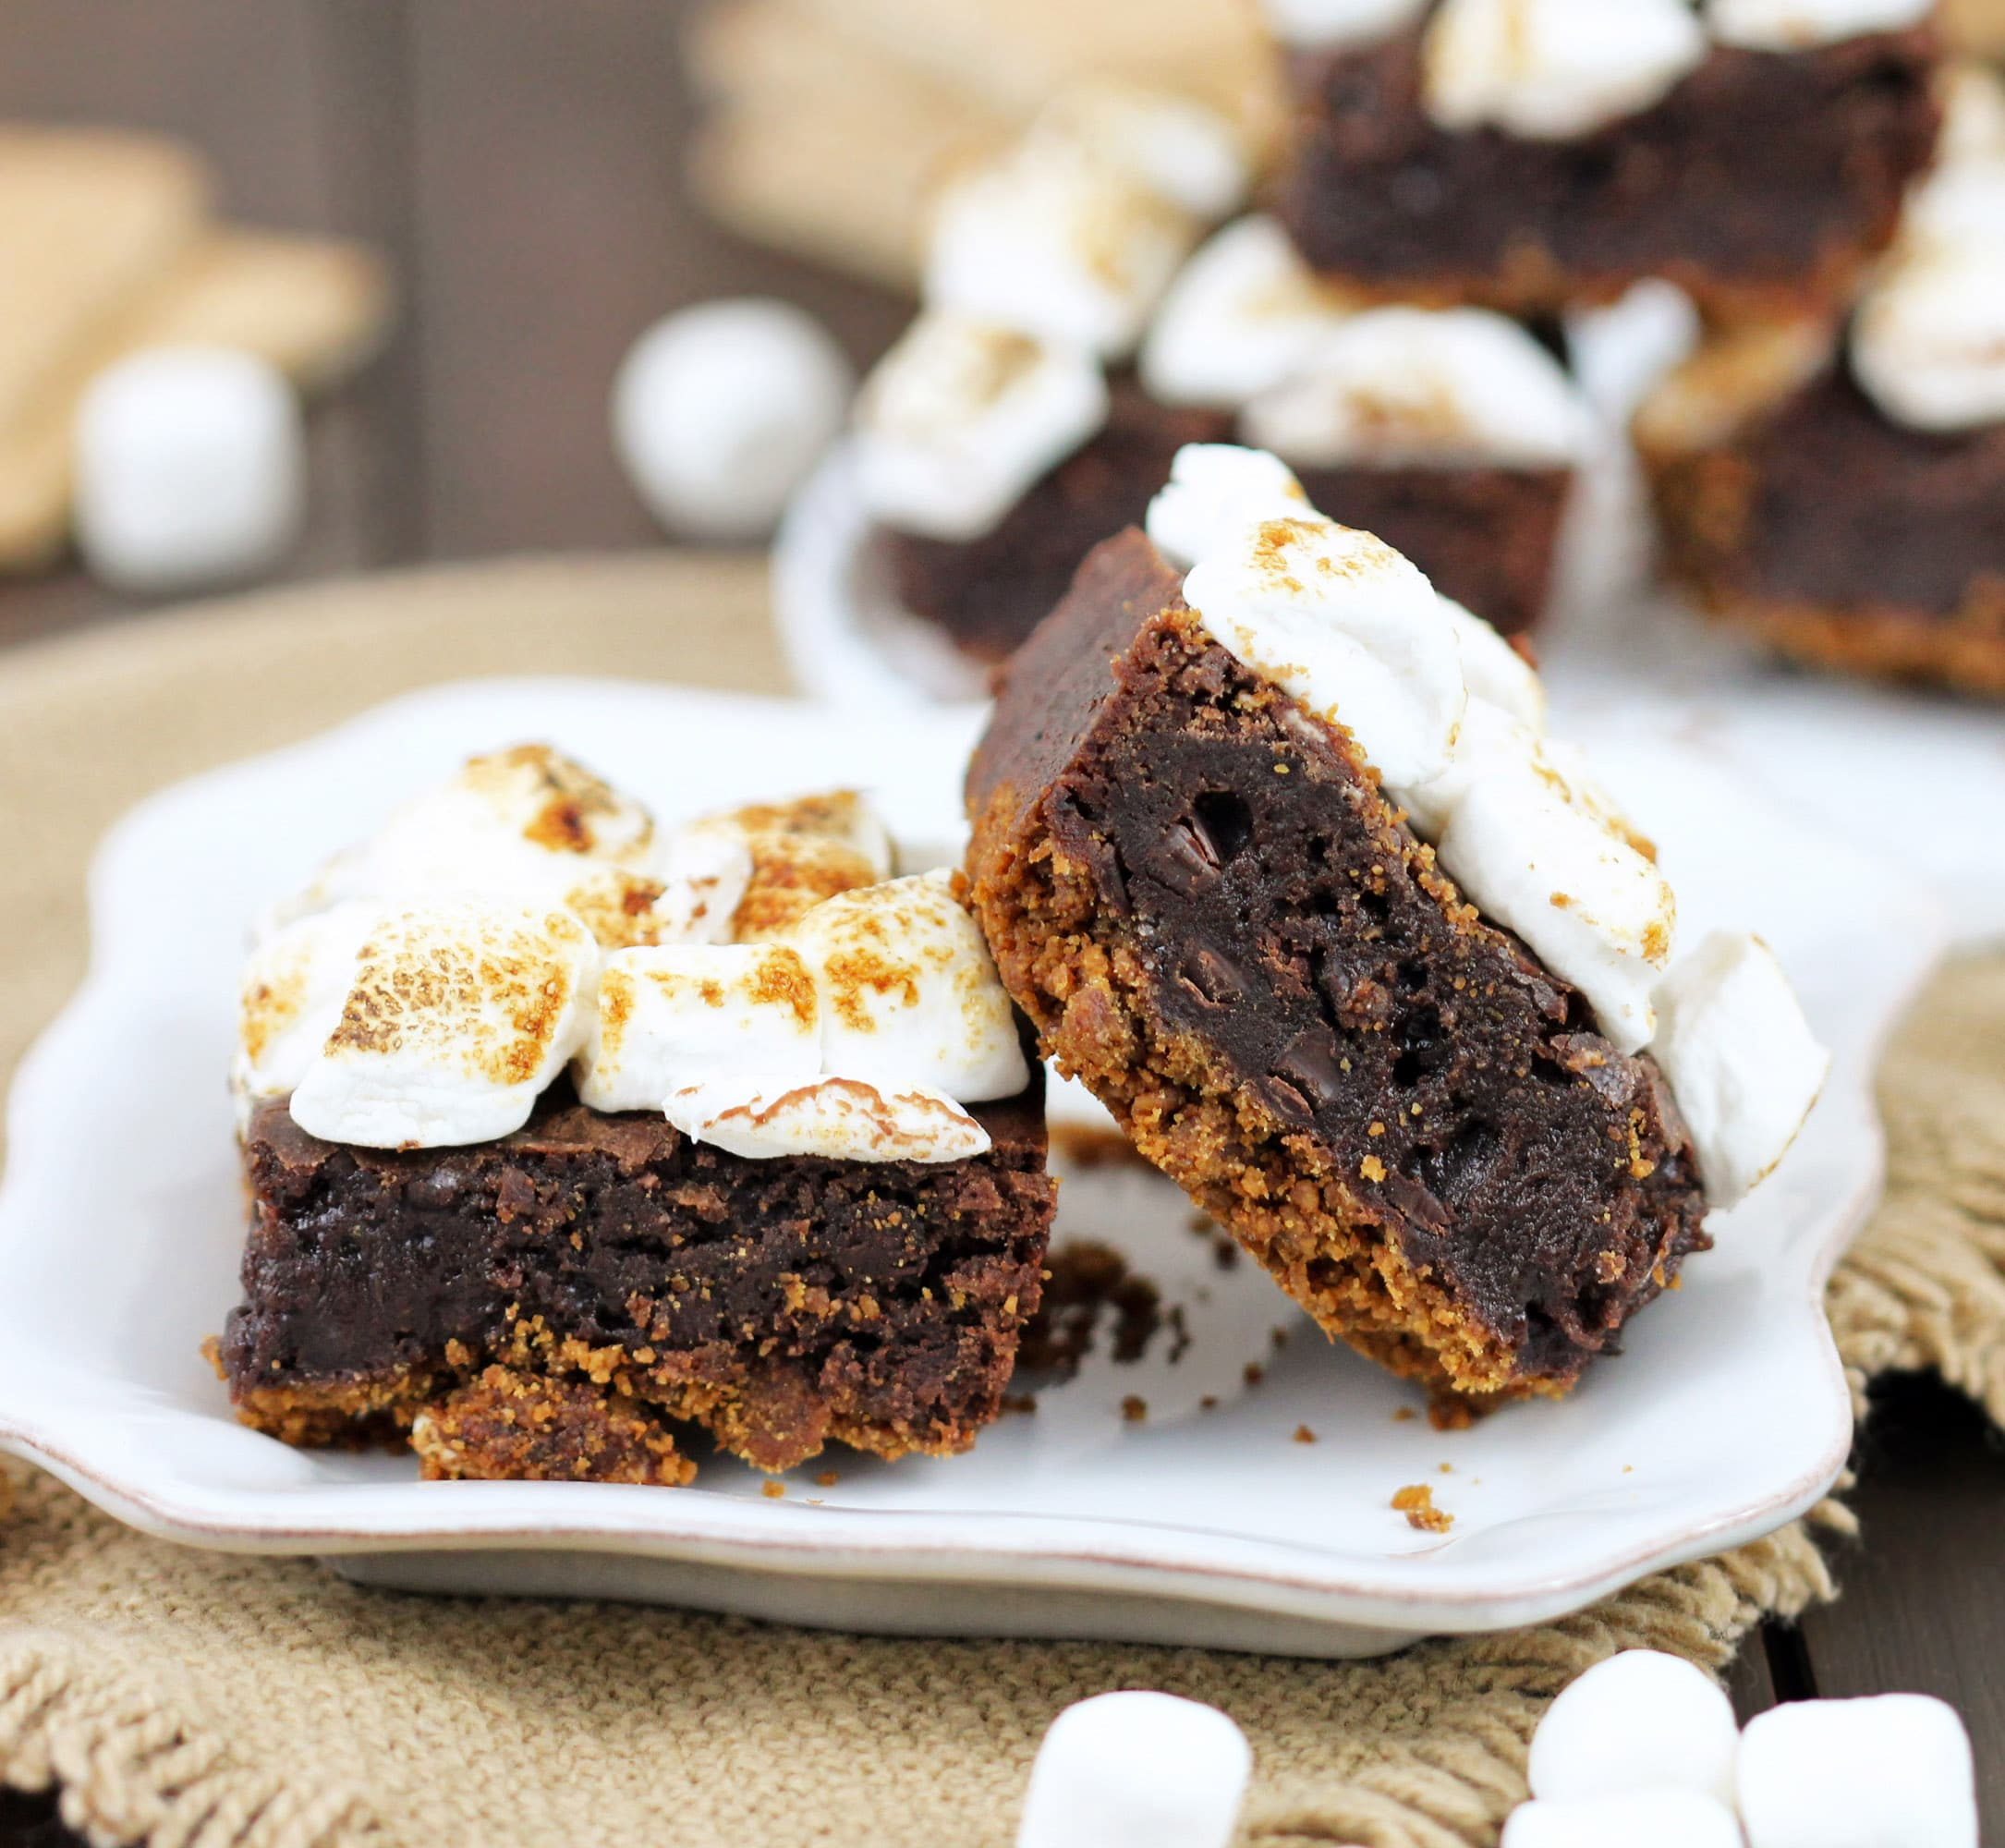 S'mores Brownies with just 6 ingredients! Satisfy your s'mores craving with these delicious brownies. Made with an actual graham cracker crust, fudge brownie filling, and a sweet marshmallow studded topping, every bite is full of salty-sweet graham cracker flavor, decadent chocolate, and toasted mallows. Healthy Dessert Recipes at the Desserts With Benefits Blog (www.DessertsWithBenefits.com)